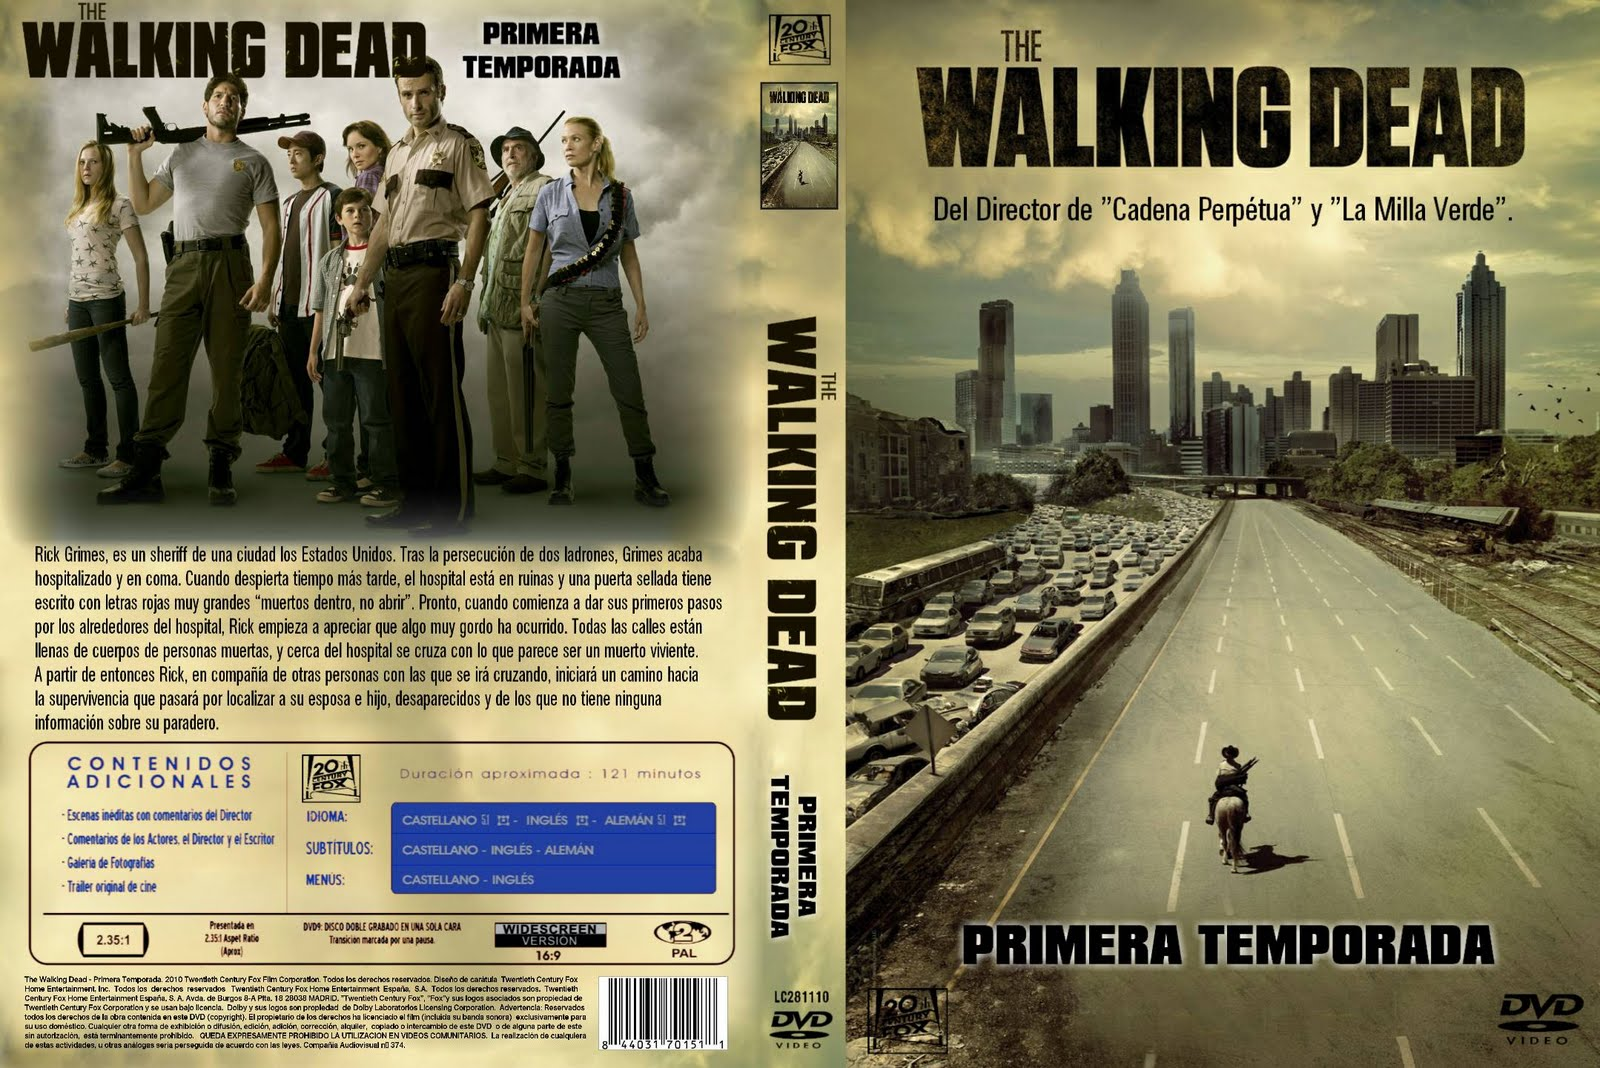 the walking dead primera temporada